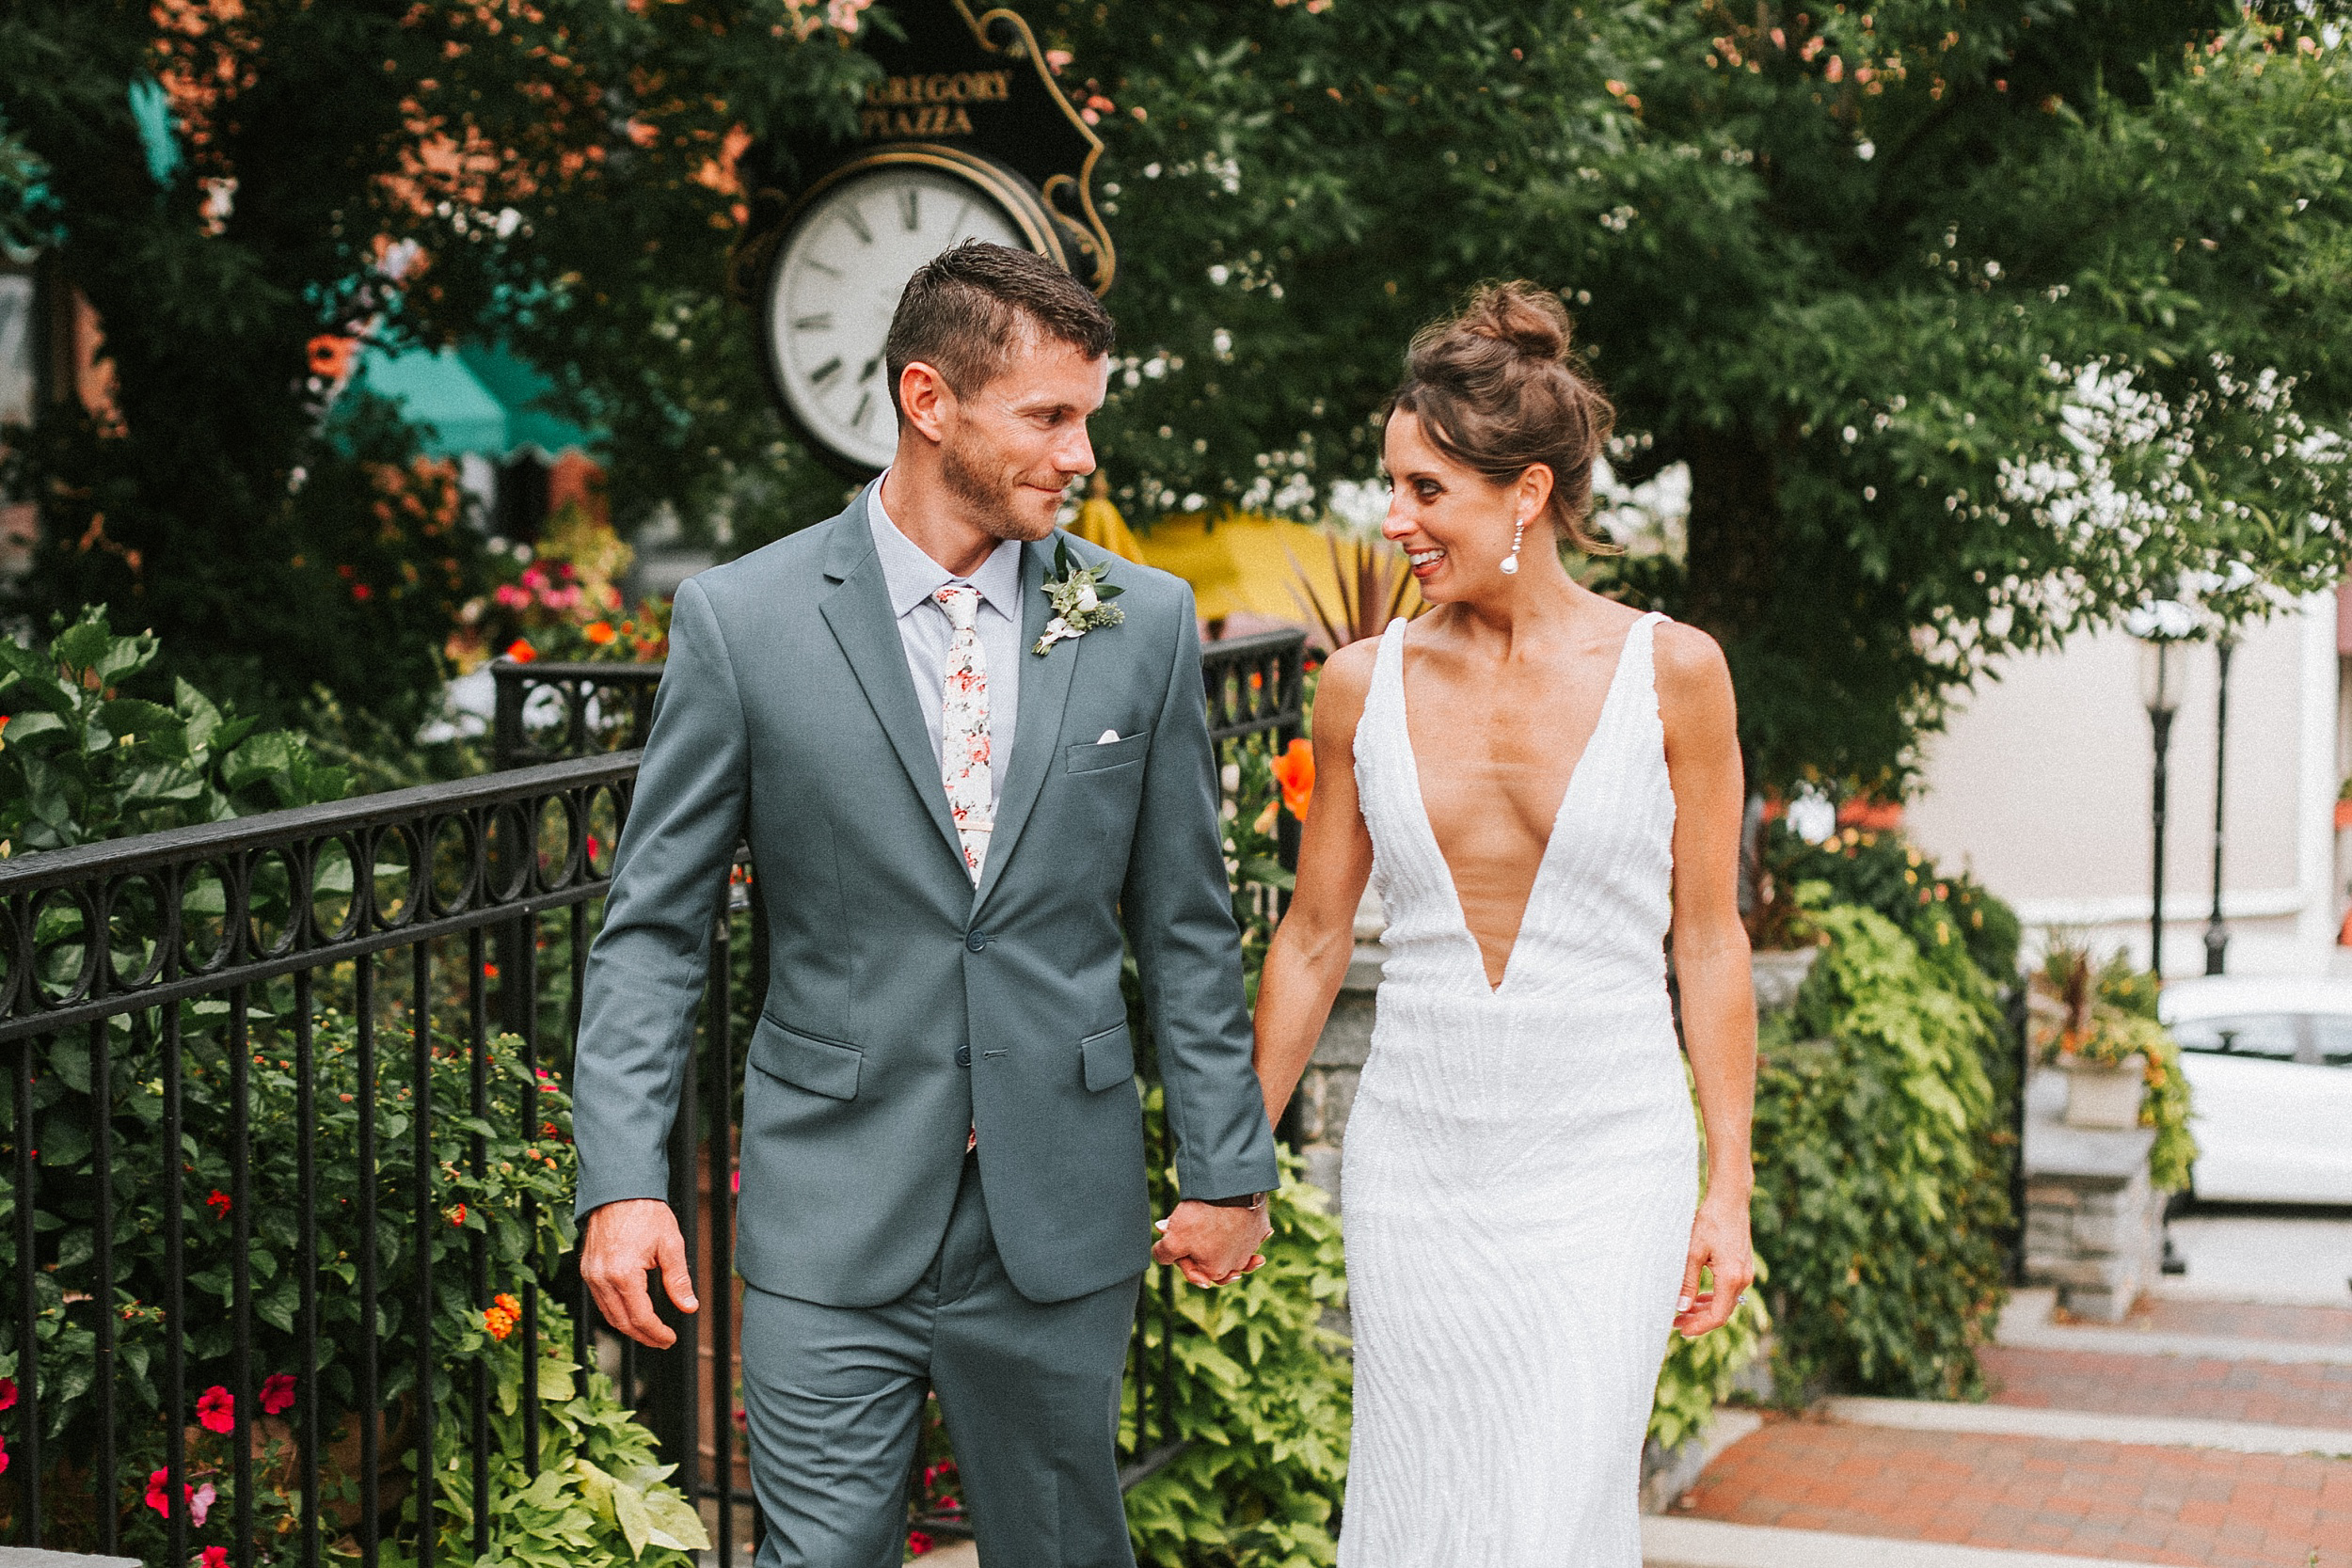 Brooke Townsend Photography - Cincinnati Wedding Photographer (139 of 170).jpg